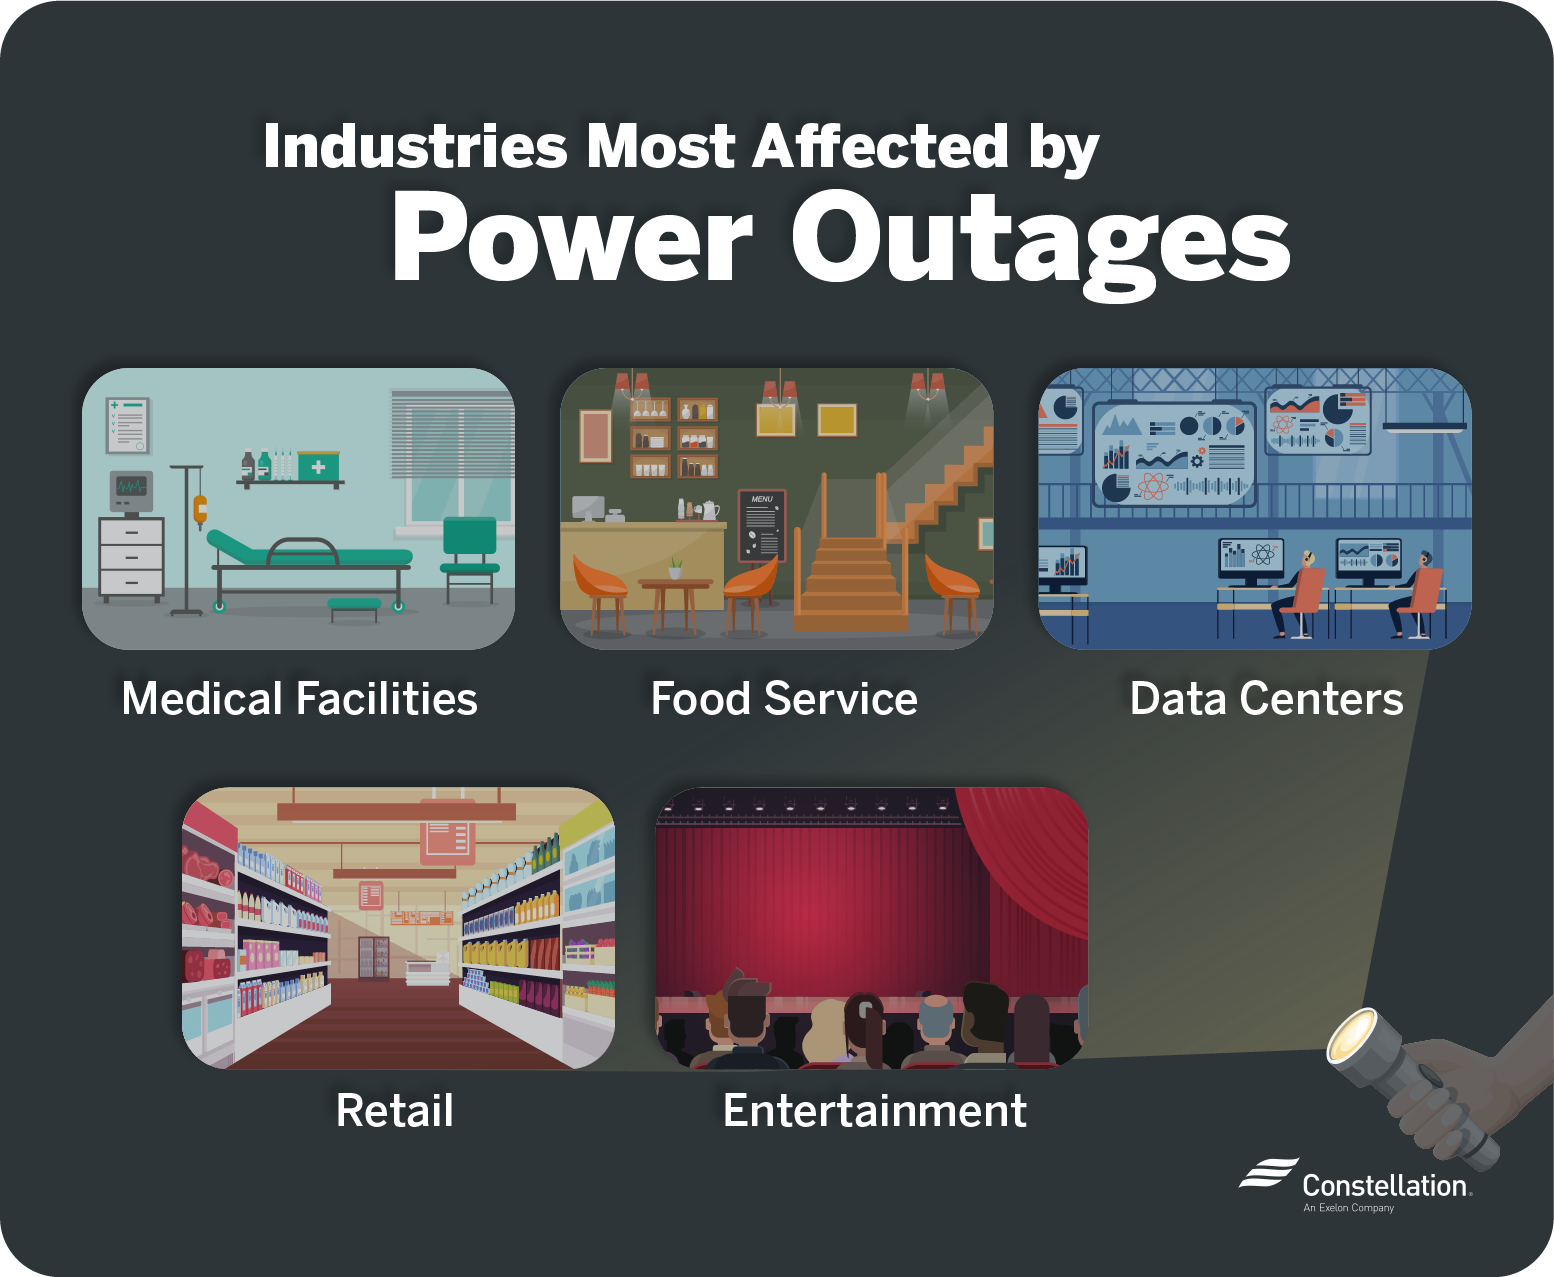 Industries more affected by power outages